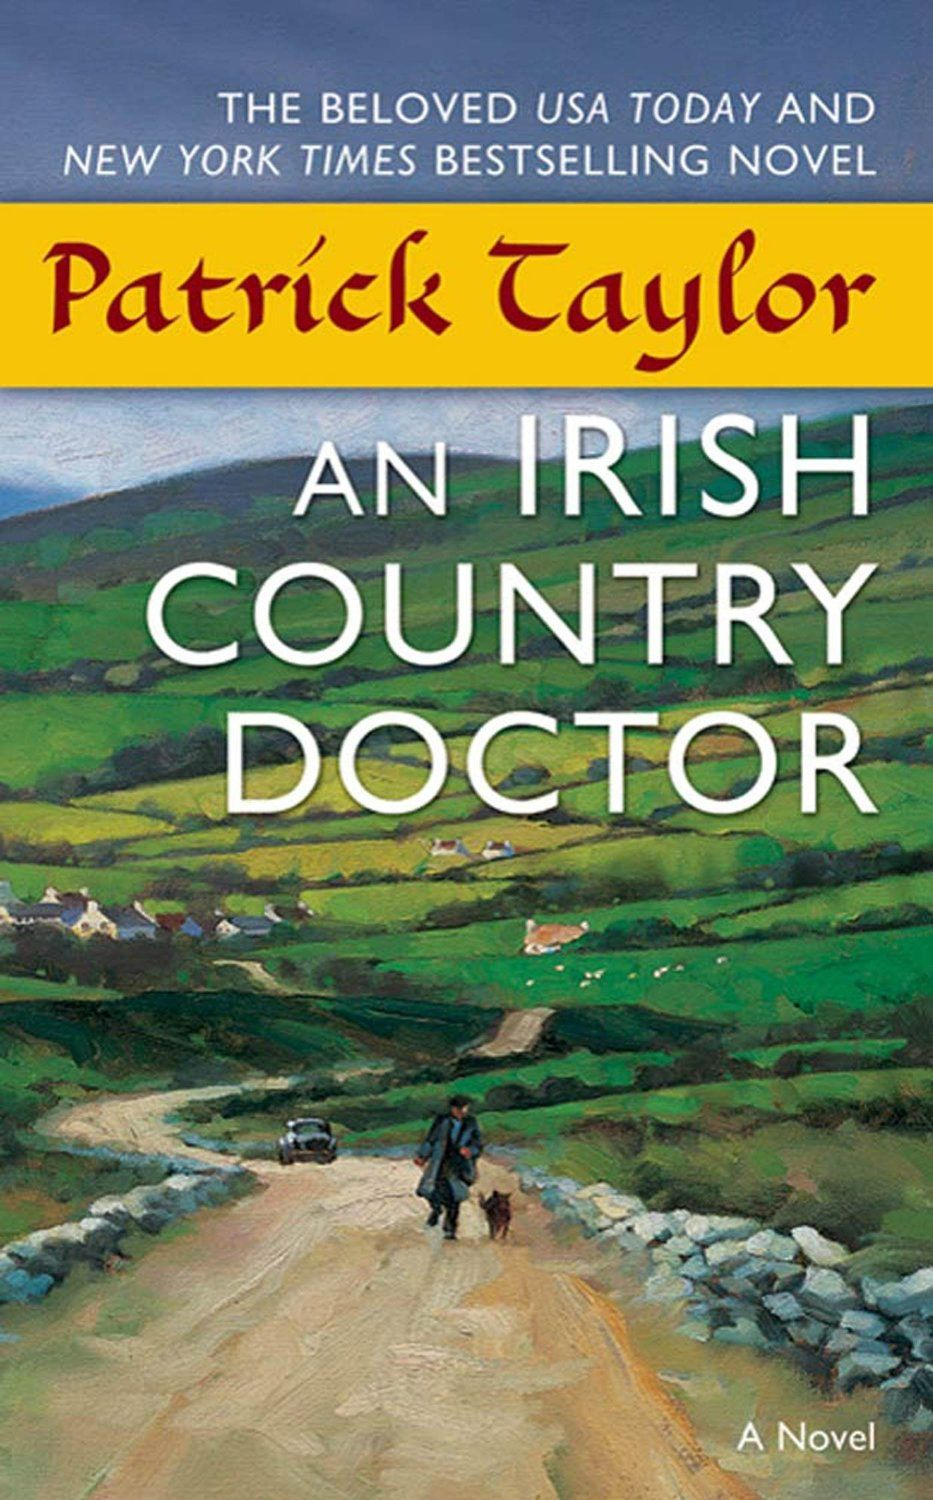 An Irish Country Doctor (Book 1) by Patrick Taylor. Barry